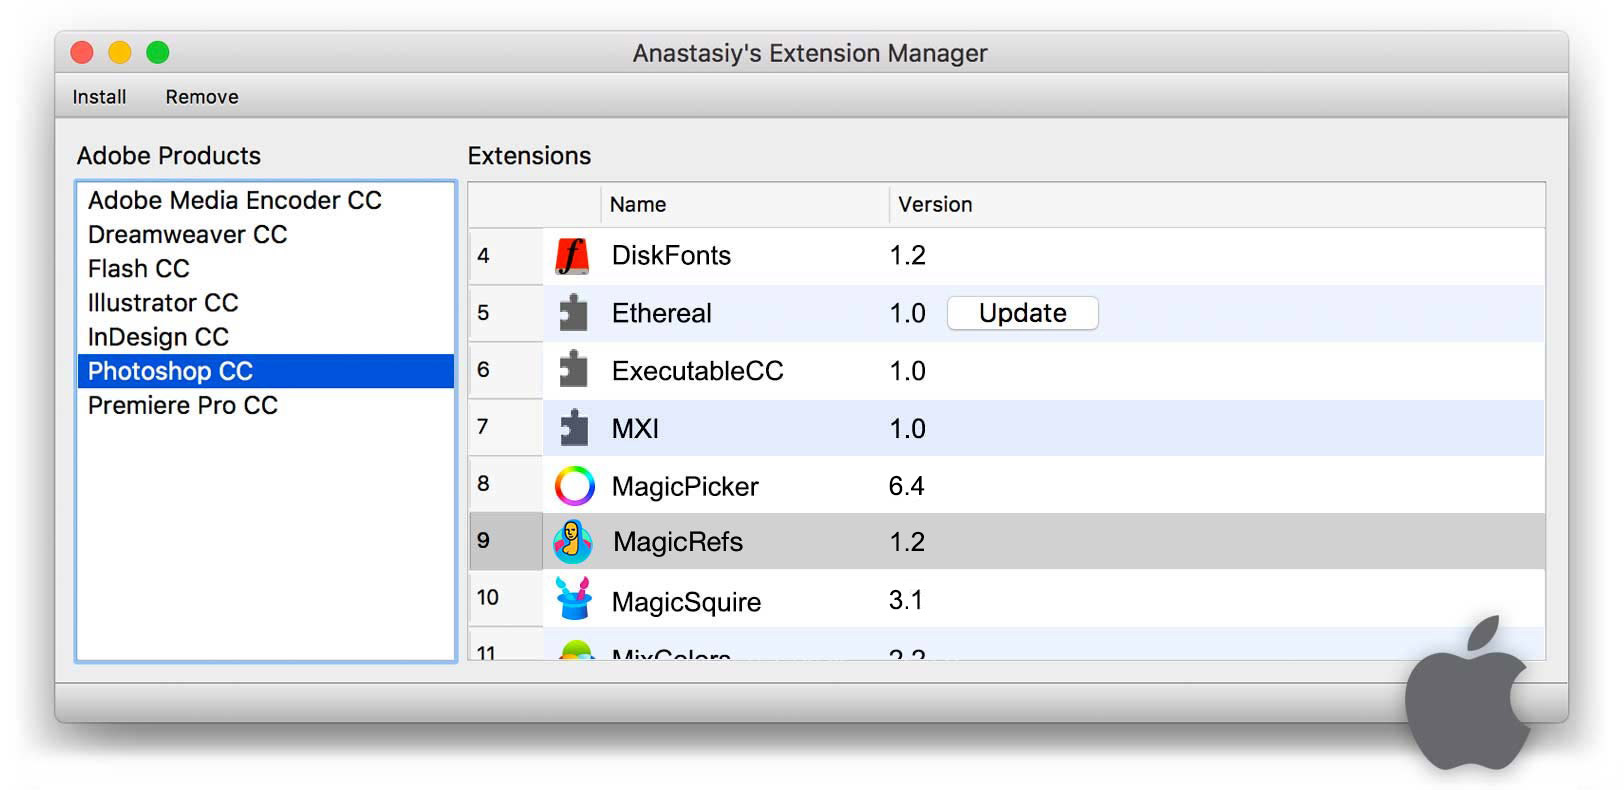 Anastasiy's Extension Manager for Adobe platform